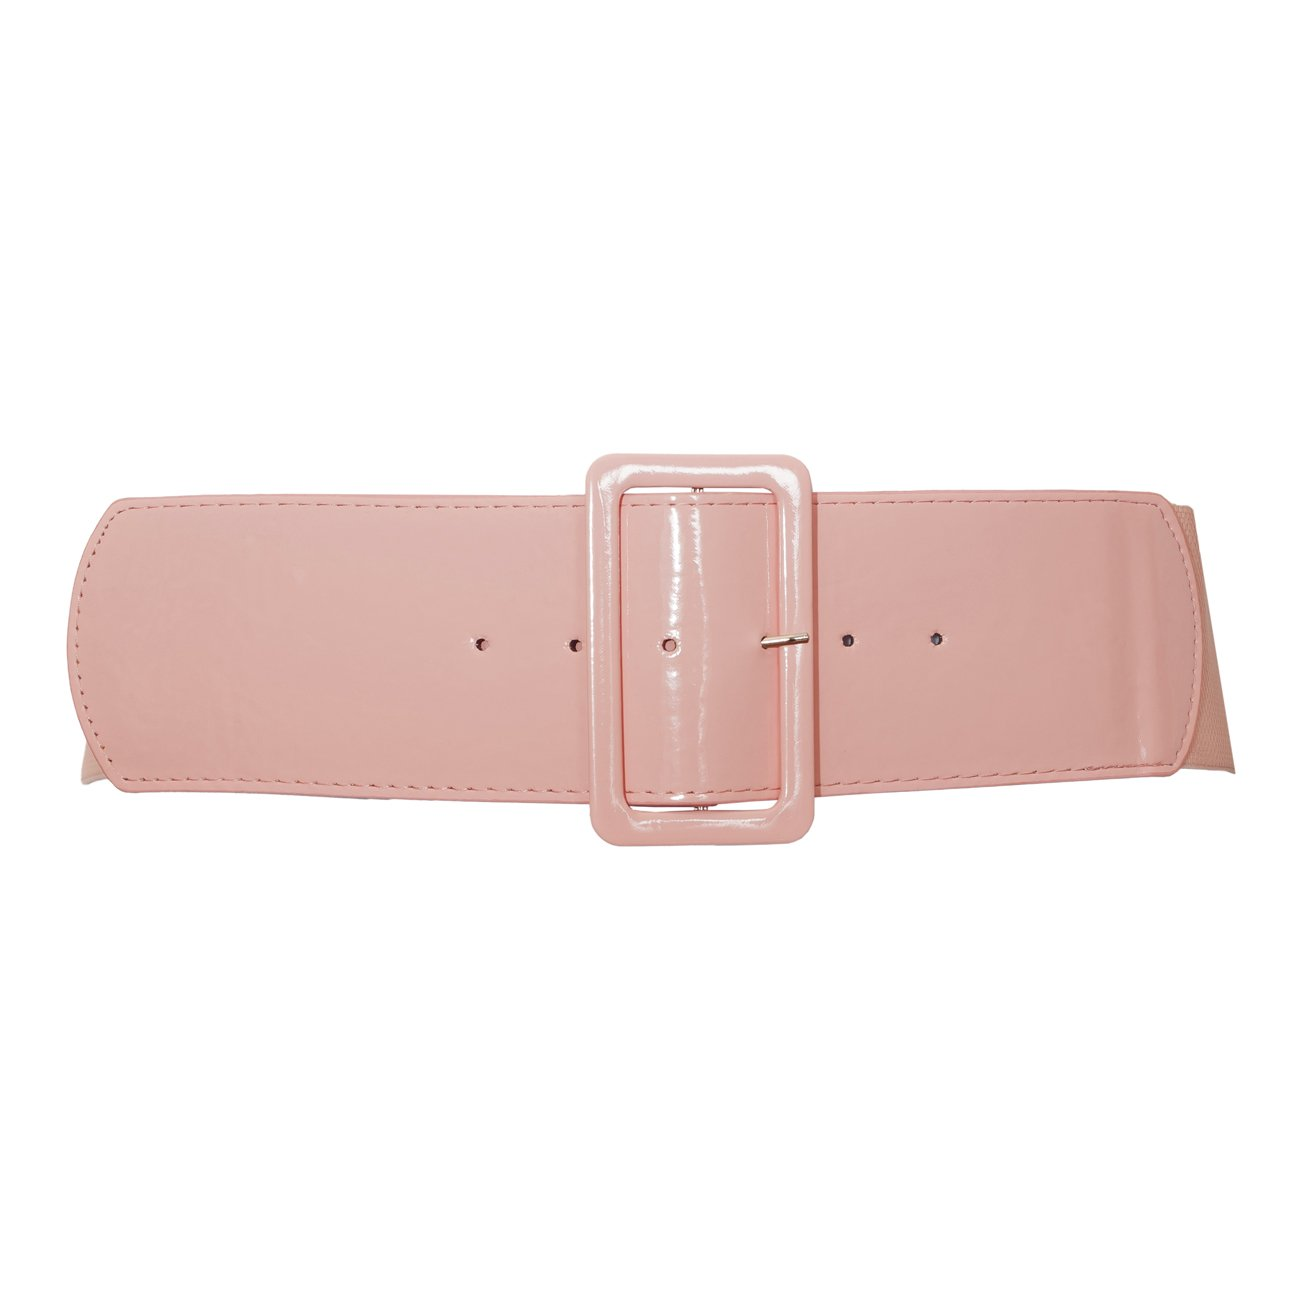 Details about eVogues Women's Wide Patent Leather Buckle High Waist Fashion Belt